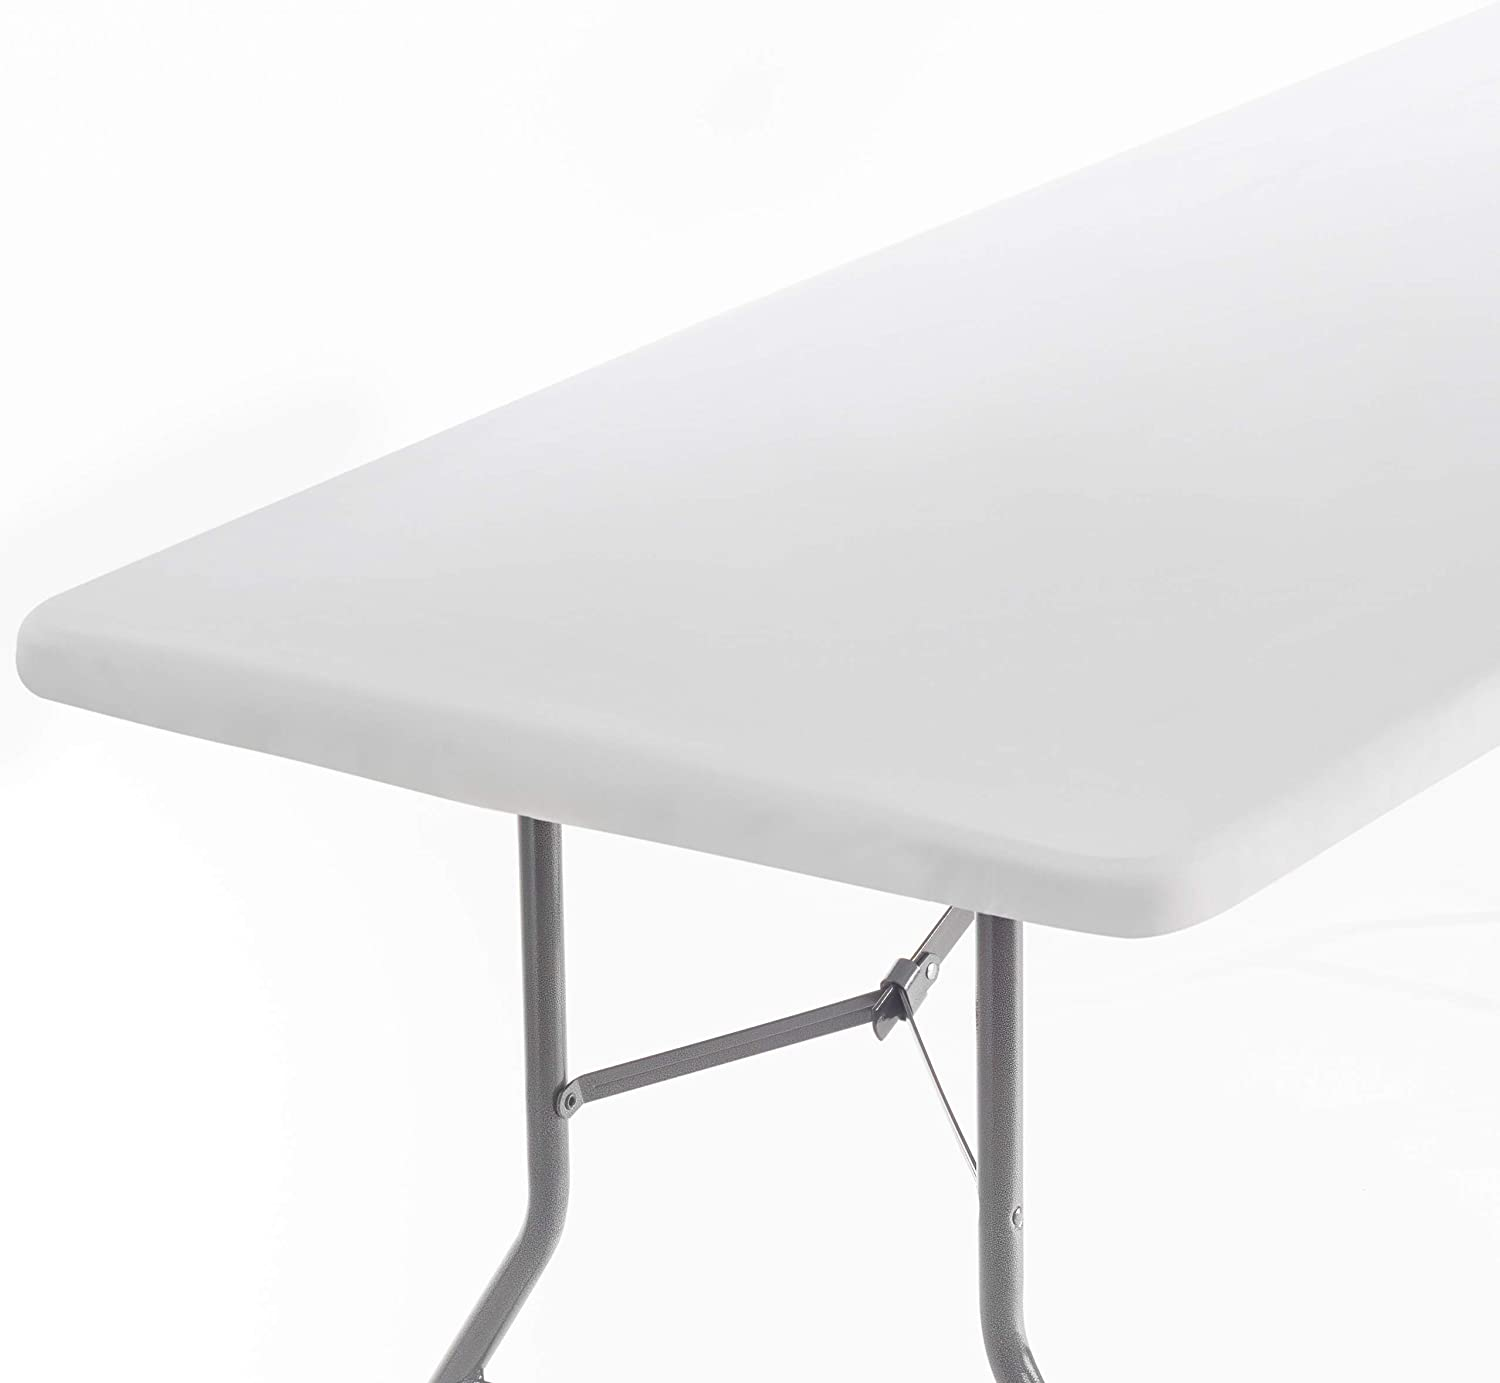 Signature Home Fitted Tablecloth Rectangle White Table Cover - 72 x 32 in Table Cloth - Fitted Table Covers for 6 Foot Tables. Washable Picnic Table Cover Indoor Outdoor Tablecloth Elastic Tablecloth